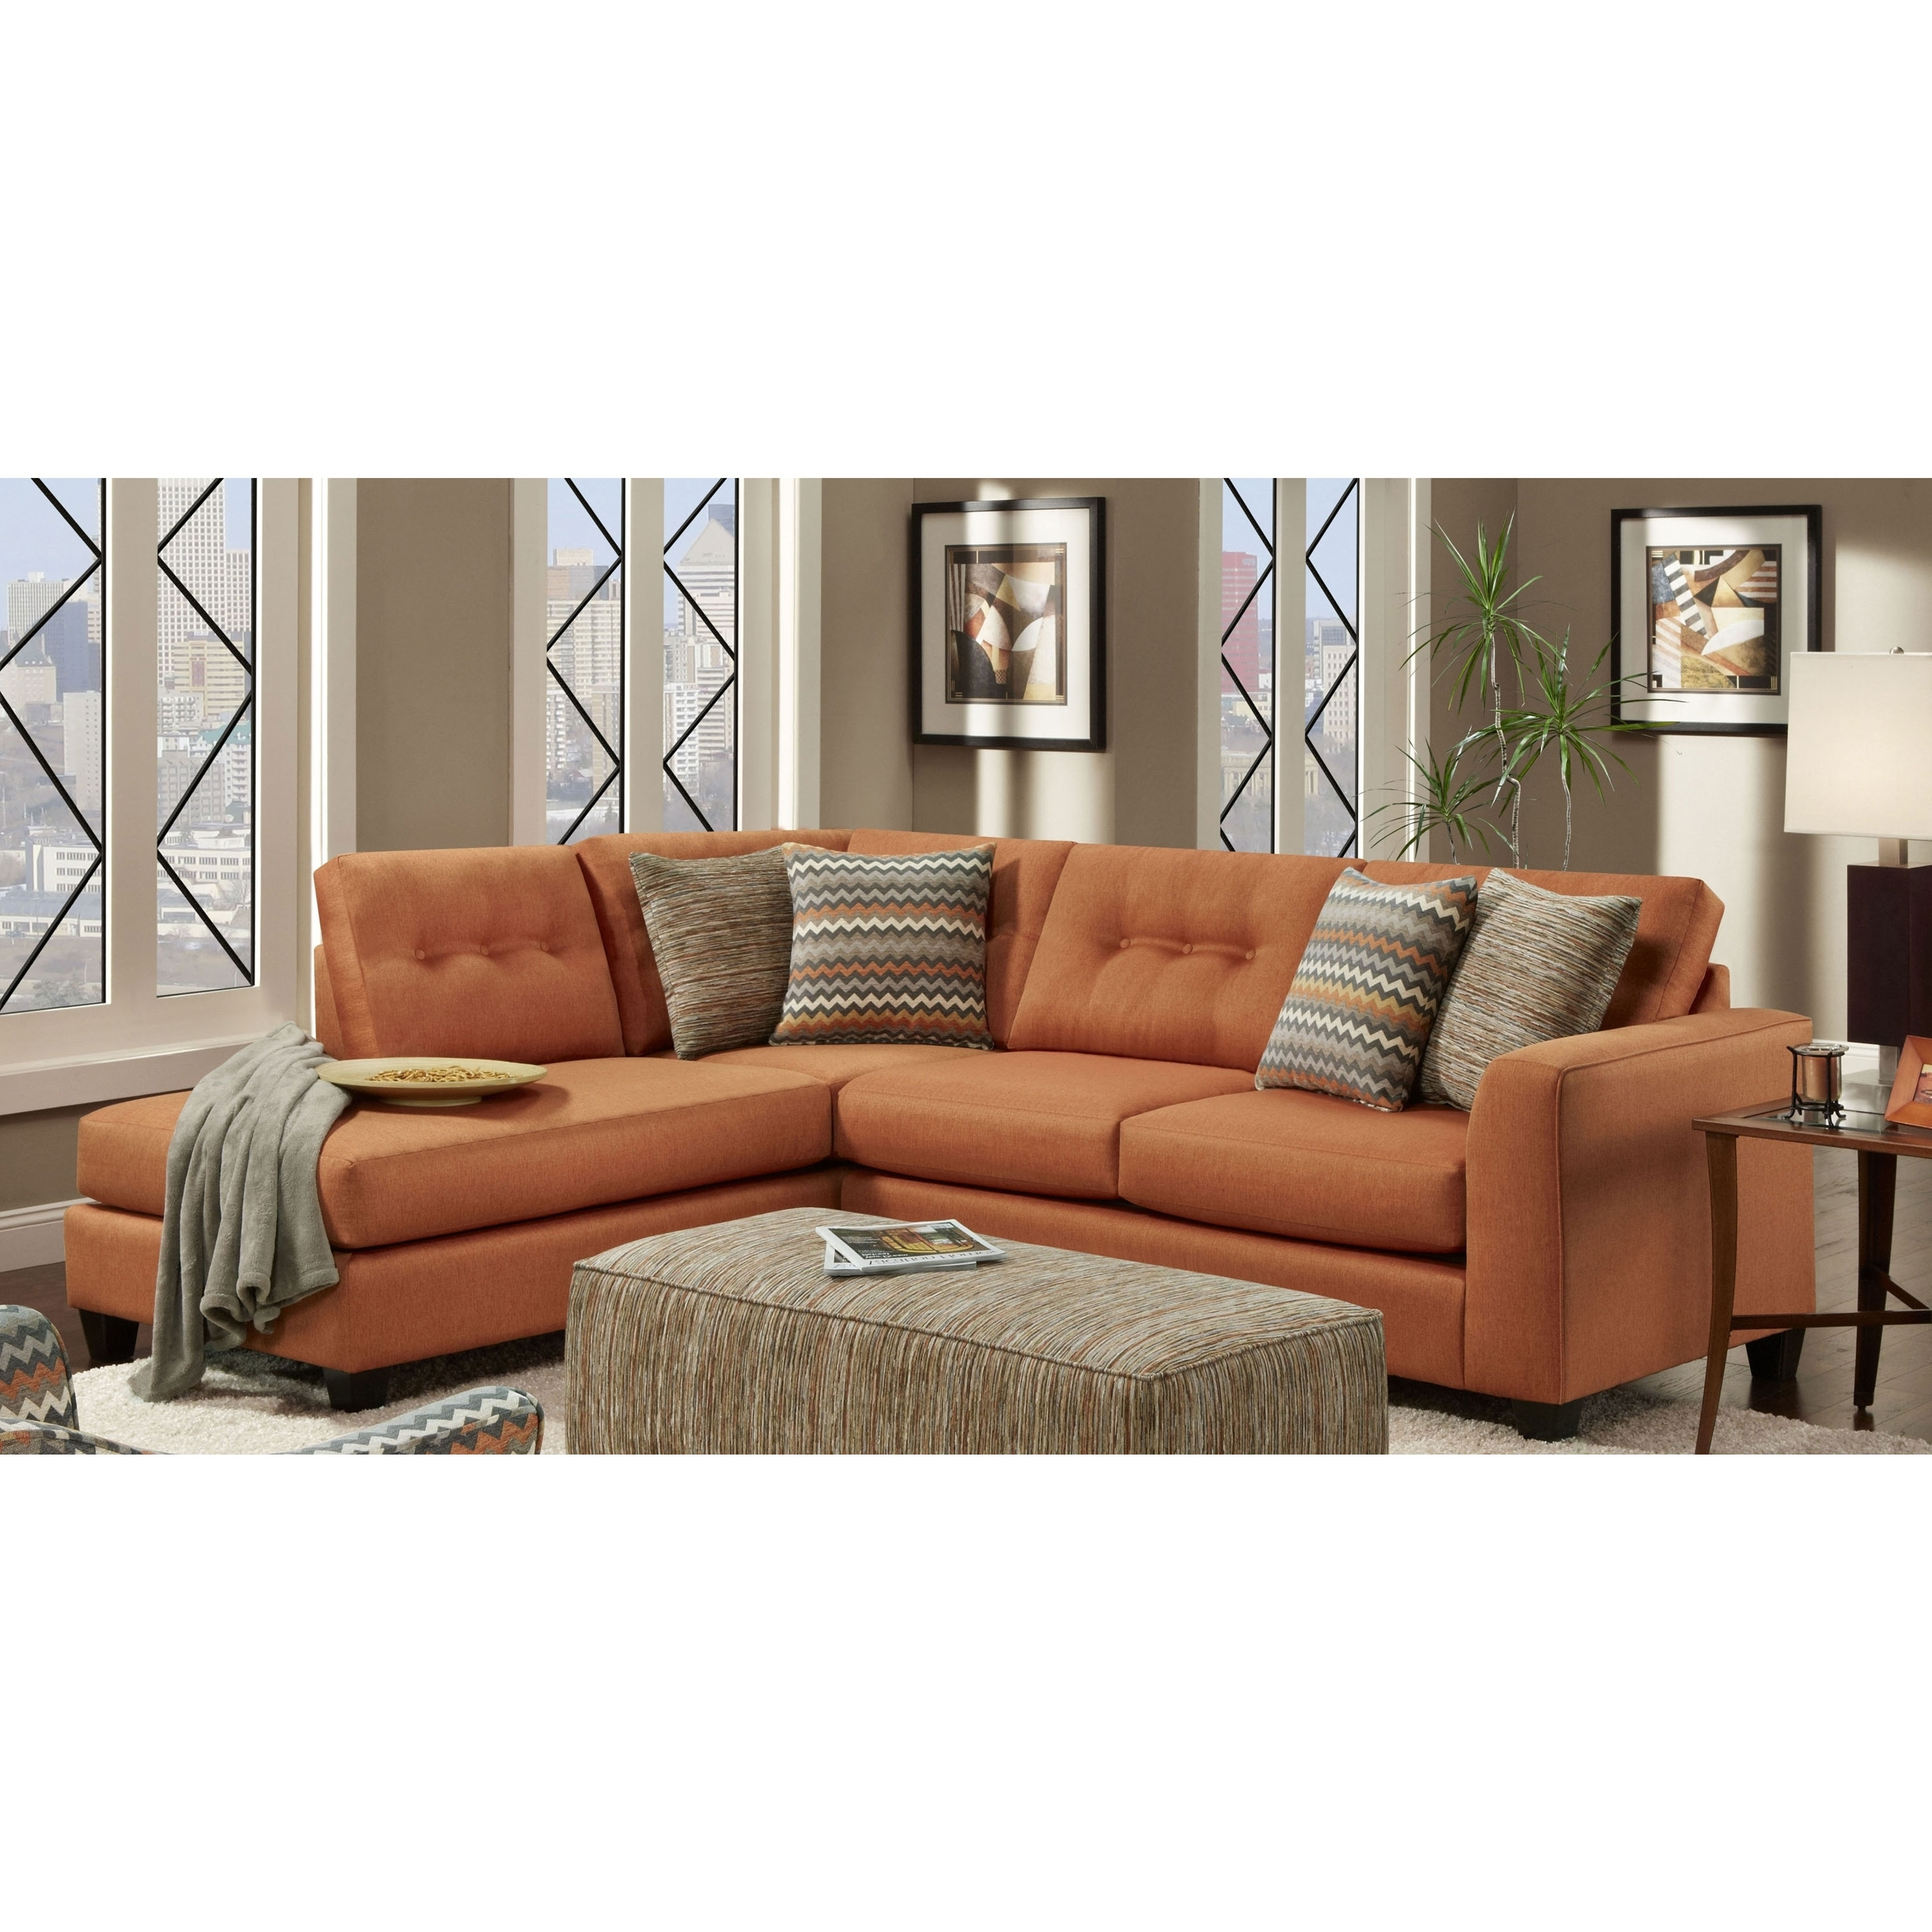 Favorite Sectional Sofa: Best Seller Sectional Sofas Phoenix Leather With Phoenix Arizona Sectional Sofas (View 4 of 20)